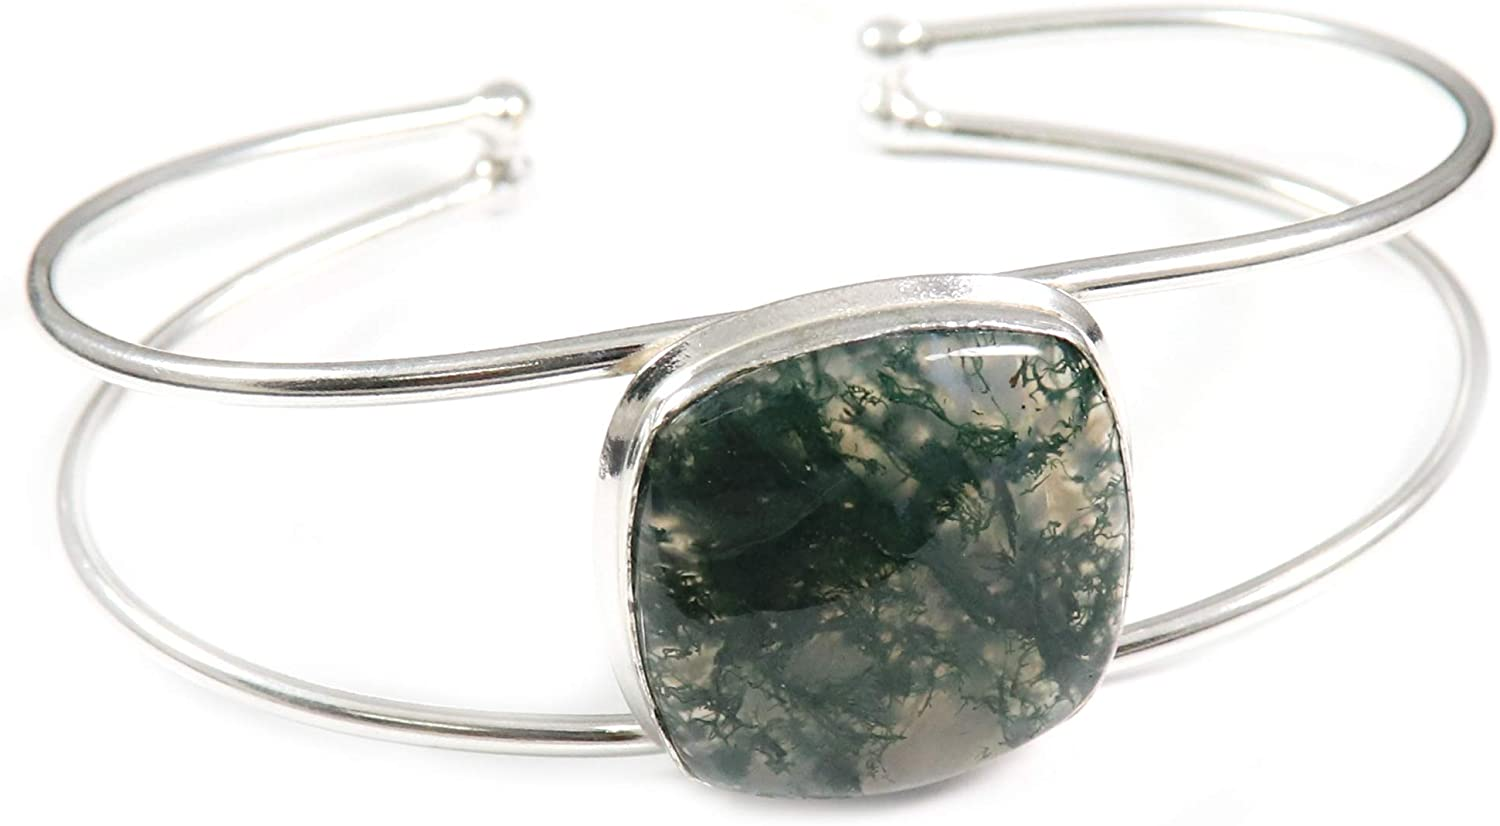 GoyalCrafts Forest Moss Agate Cuff Silver Over item handling Bracelet Plated Jewelr Max 43% OFF